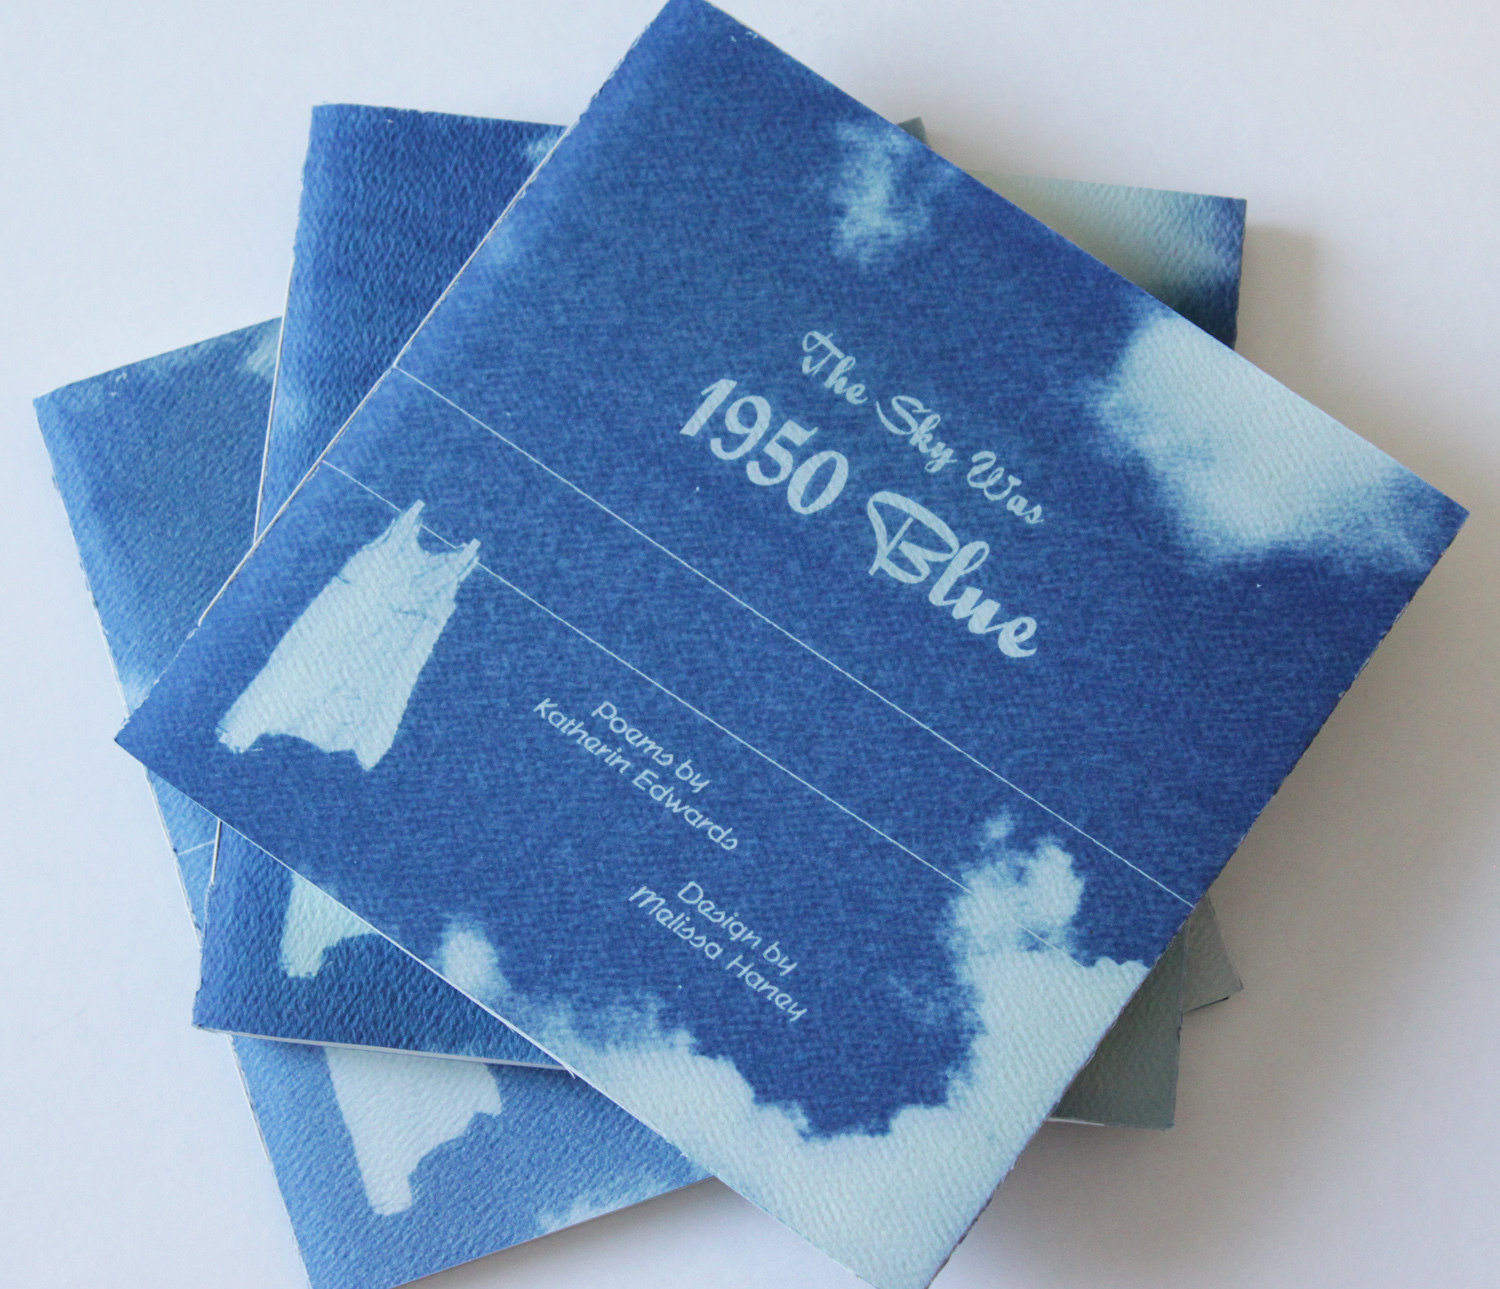 Sky was 1950 Blue, The: Poems from a Clothesline